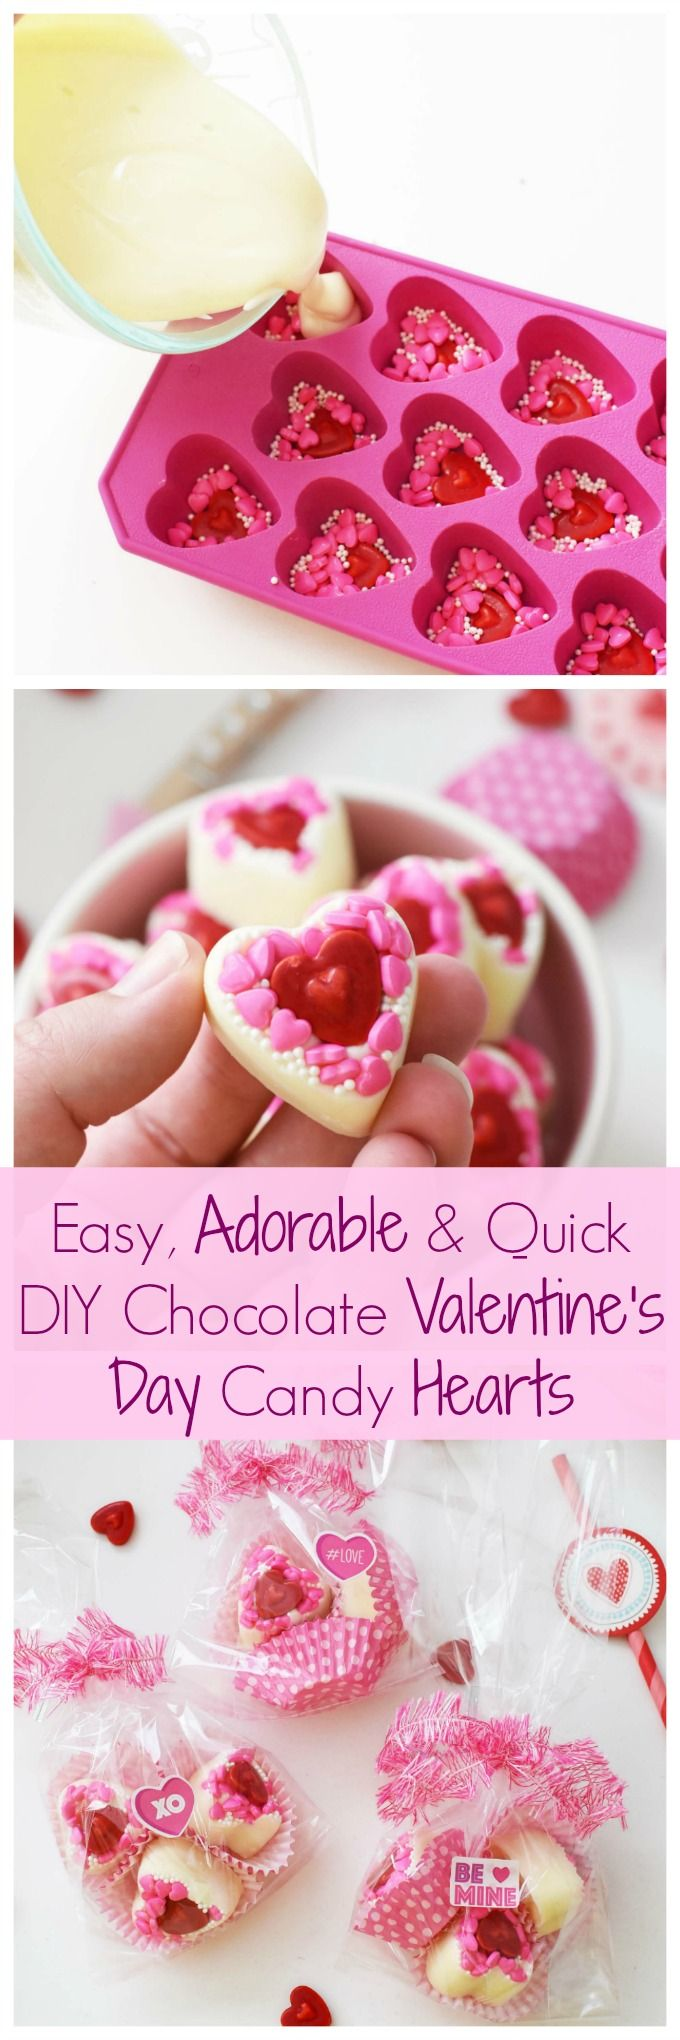 Easy, Adorable, & Quick DIY White Chocolate Valentine's Day Candy Hearts. Get the DIY for these adorable, homemade Valentine's Day treats today! via @savvysavingcoup AD